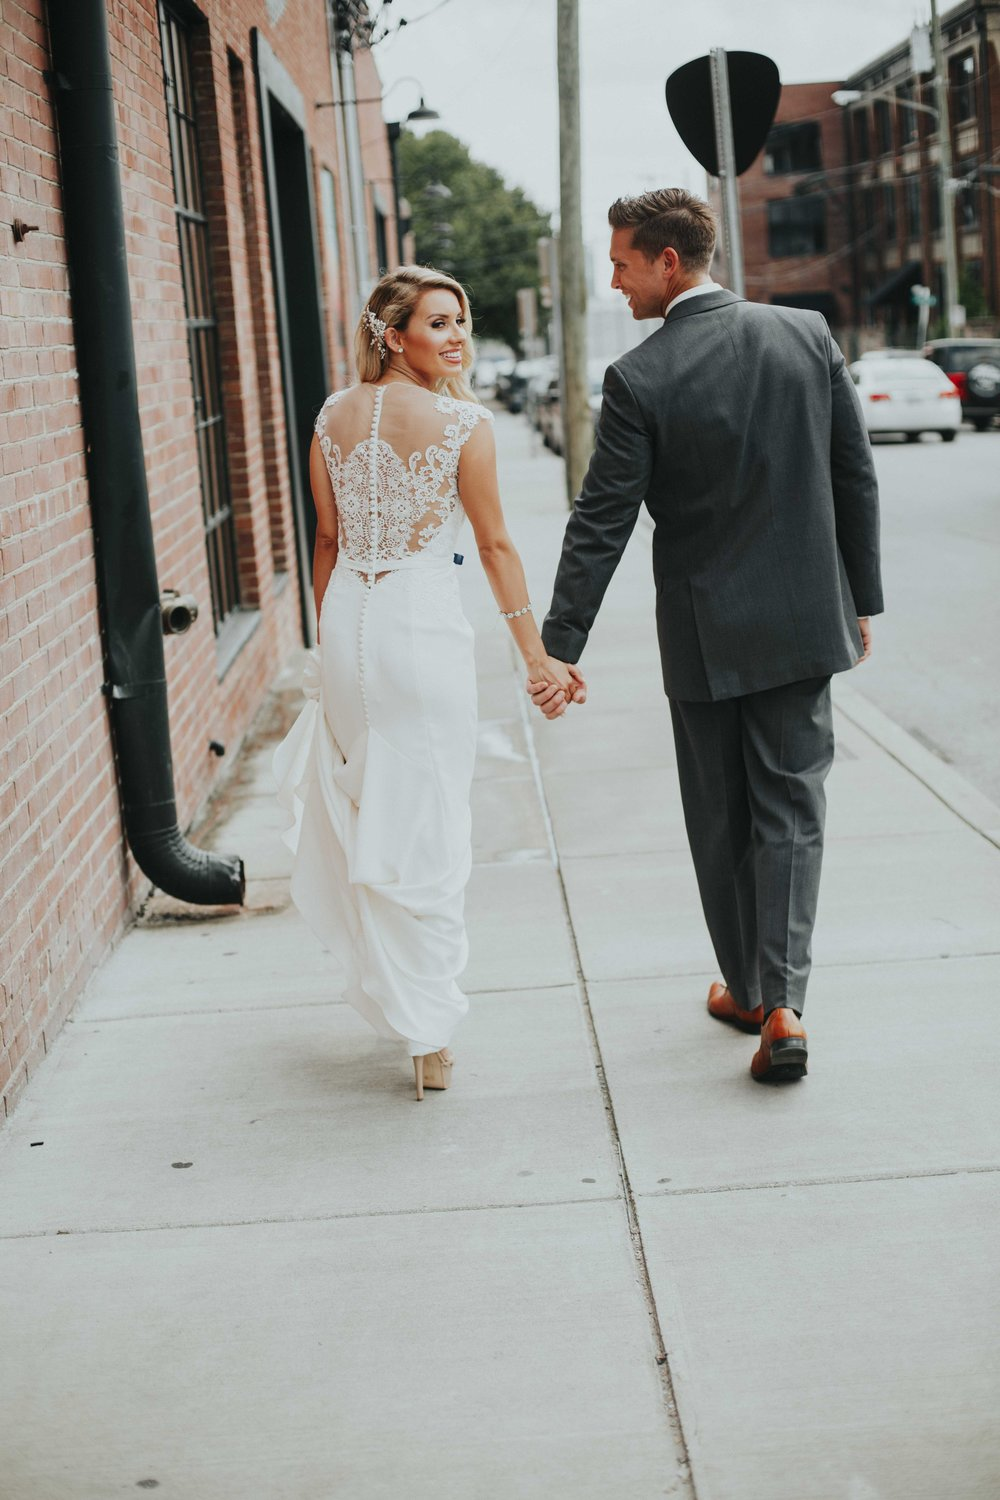 Clinton Street The Foundry Best Wedding Venue with Best Photographer/videographer Emily Anne Photo Art (Photography)